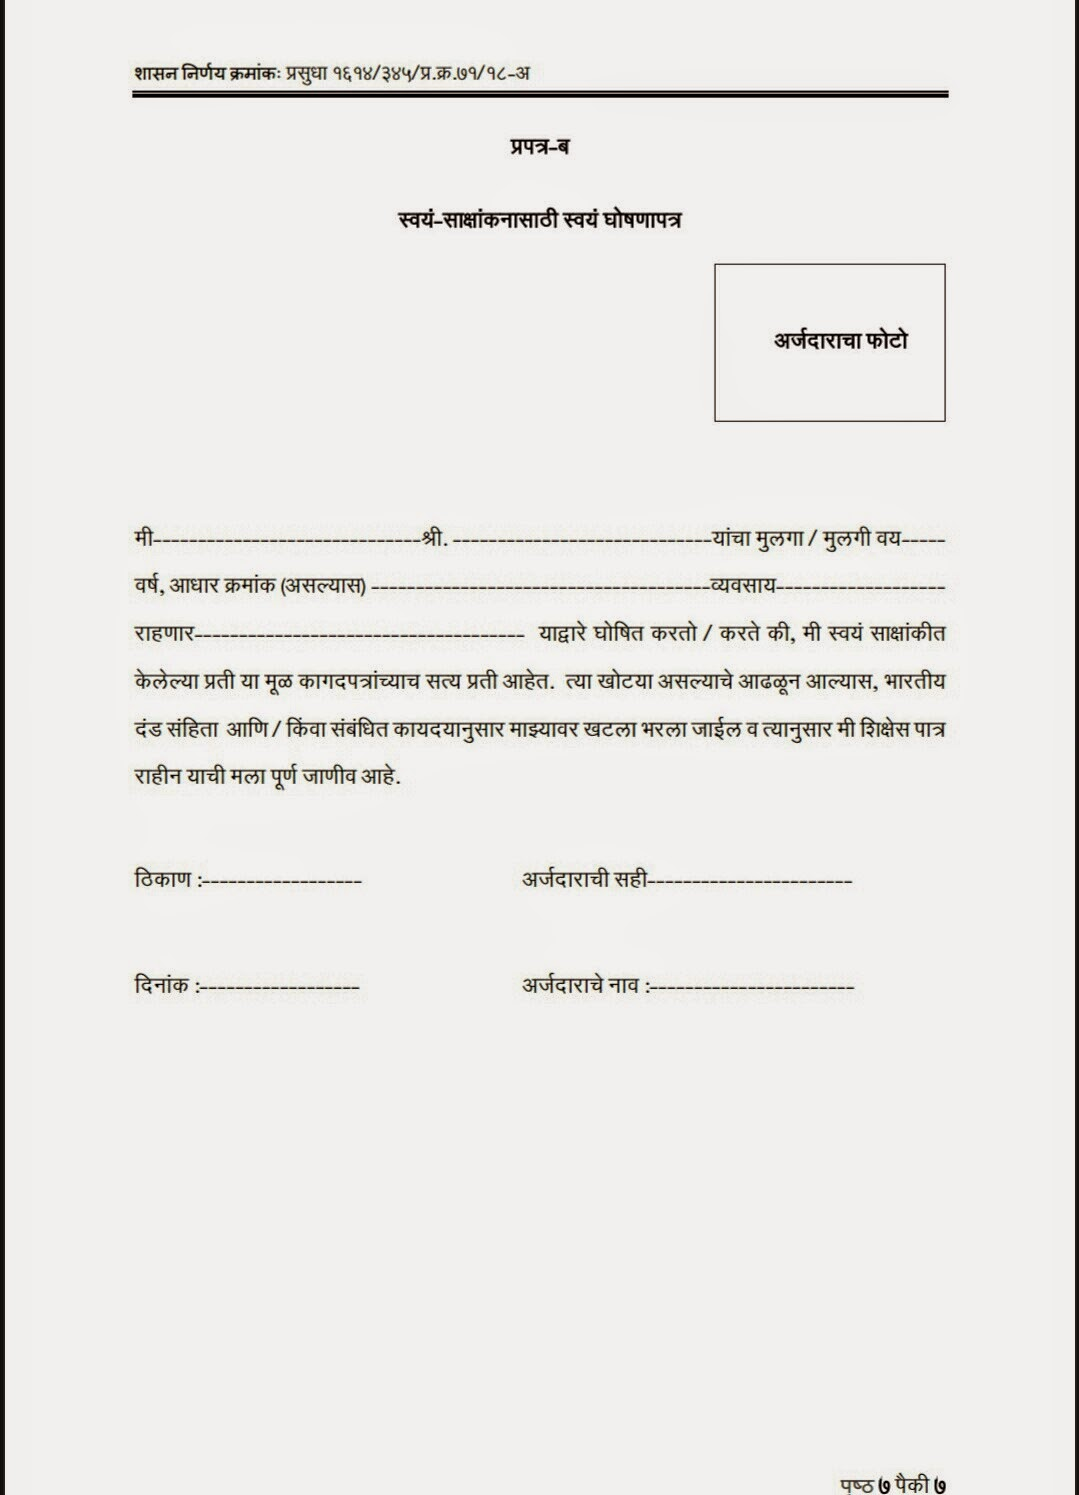 The Gavankars No Attestation And Stamp Paper Needed For Any